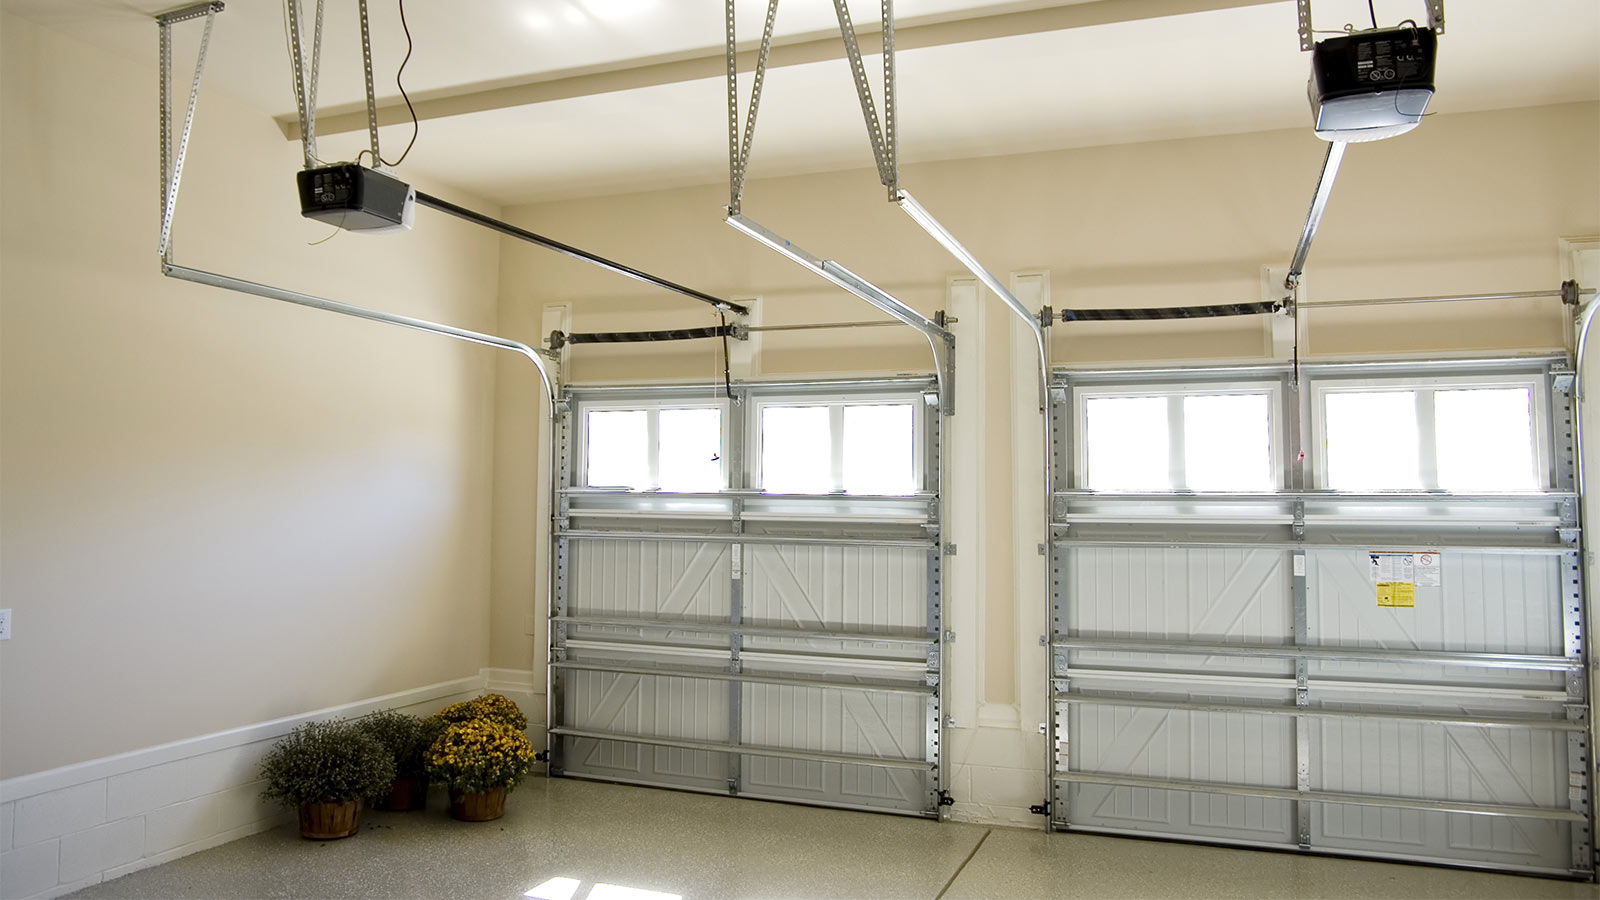 Sectional Garage Doors from Fire Shutters Luton suppliers.